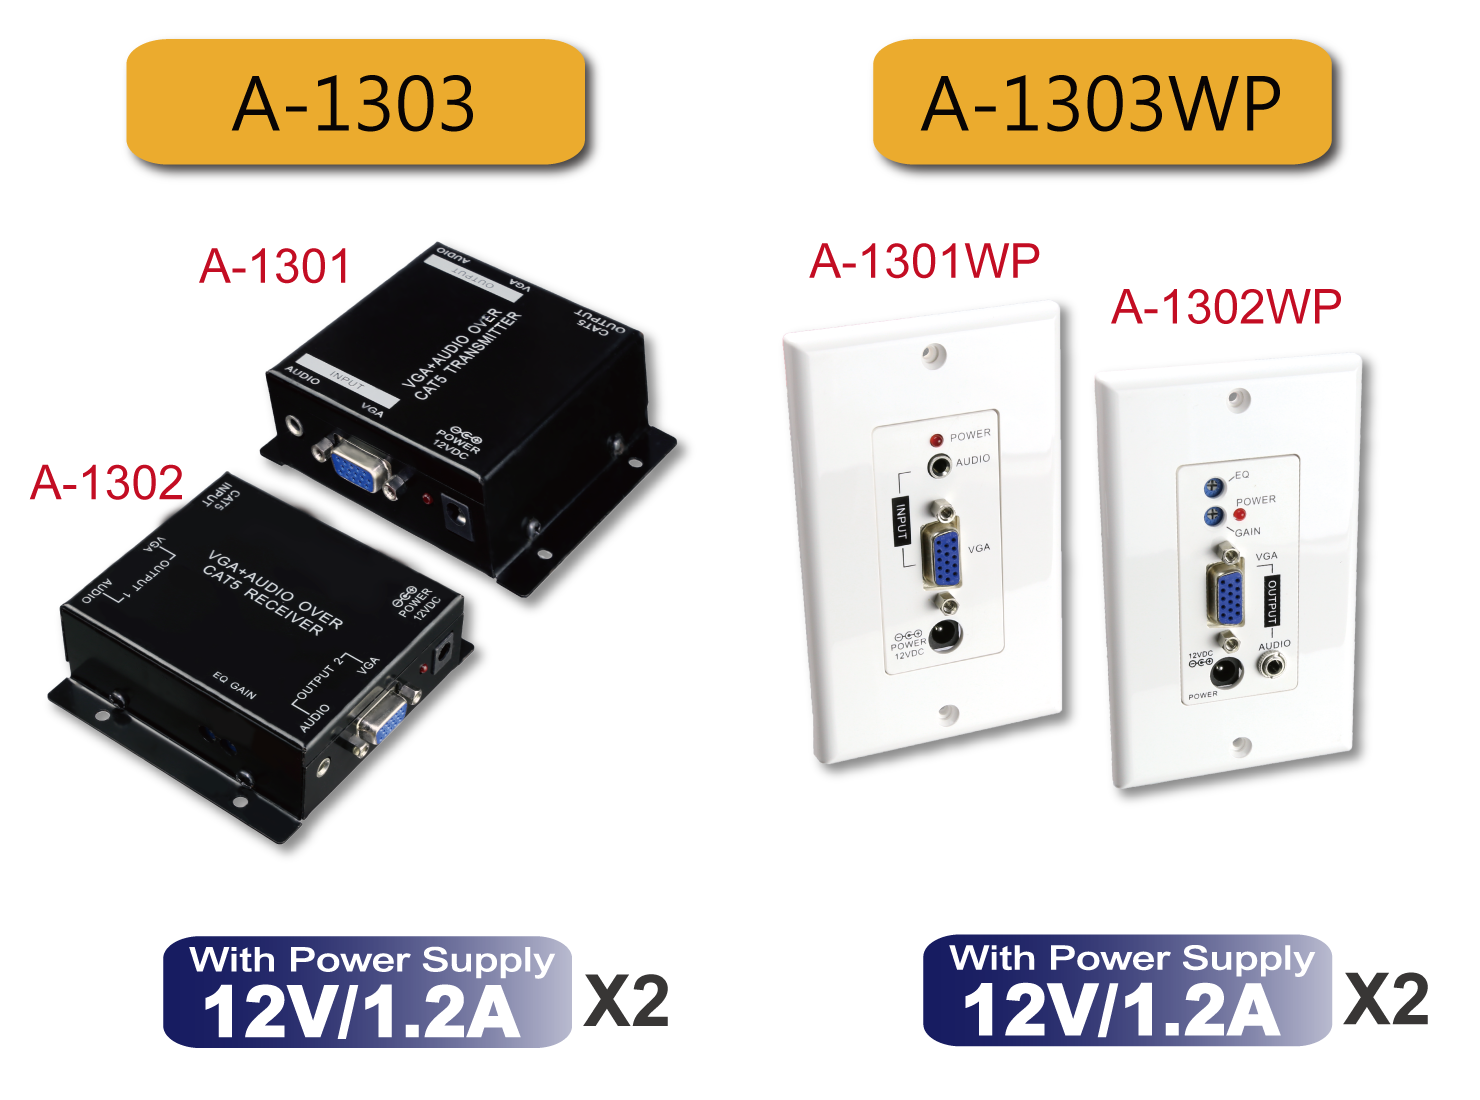 A-1303 / A-1303WP : Active VGA plus Audio over CAT5 Extender